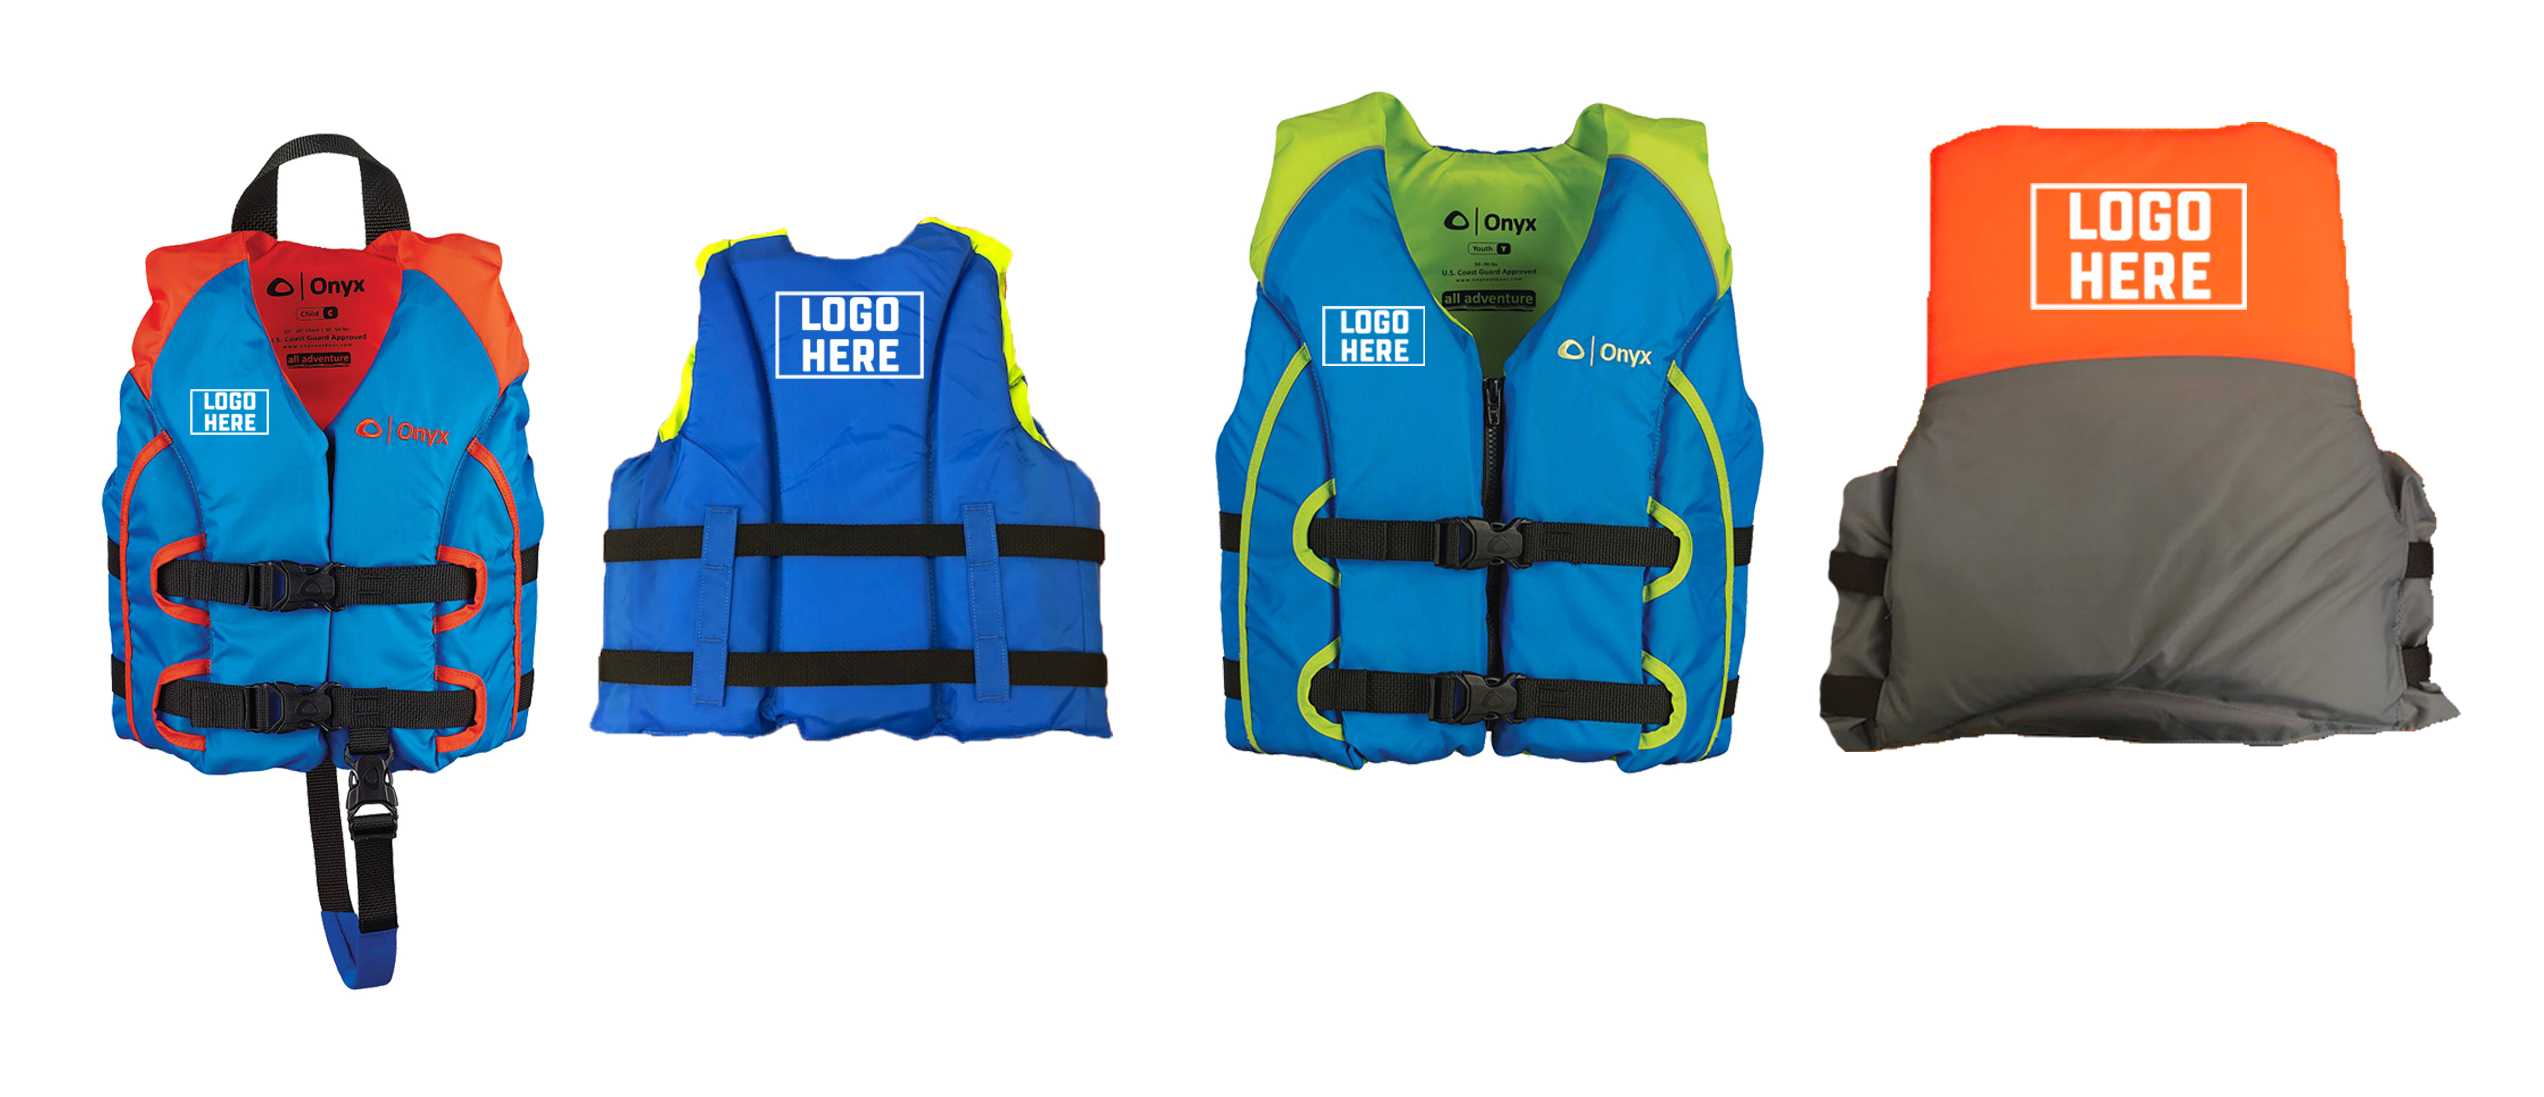 c6f2d5efd77b1 All Adventure Life Vest: Feature a segmented foam design for a better fit  and zippered front with waist belts to keep them from riding up. Child,  Youth ...